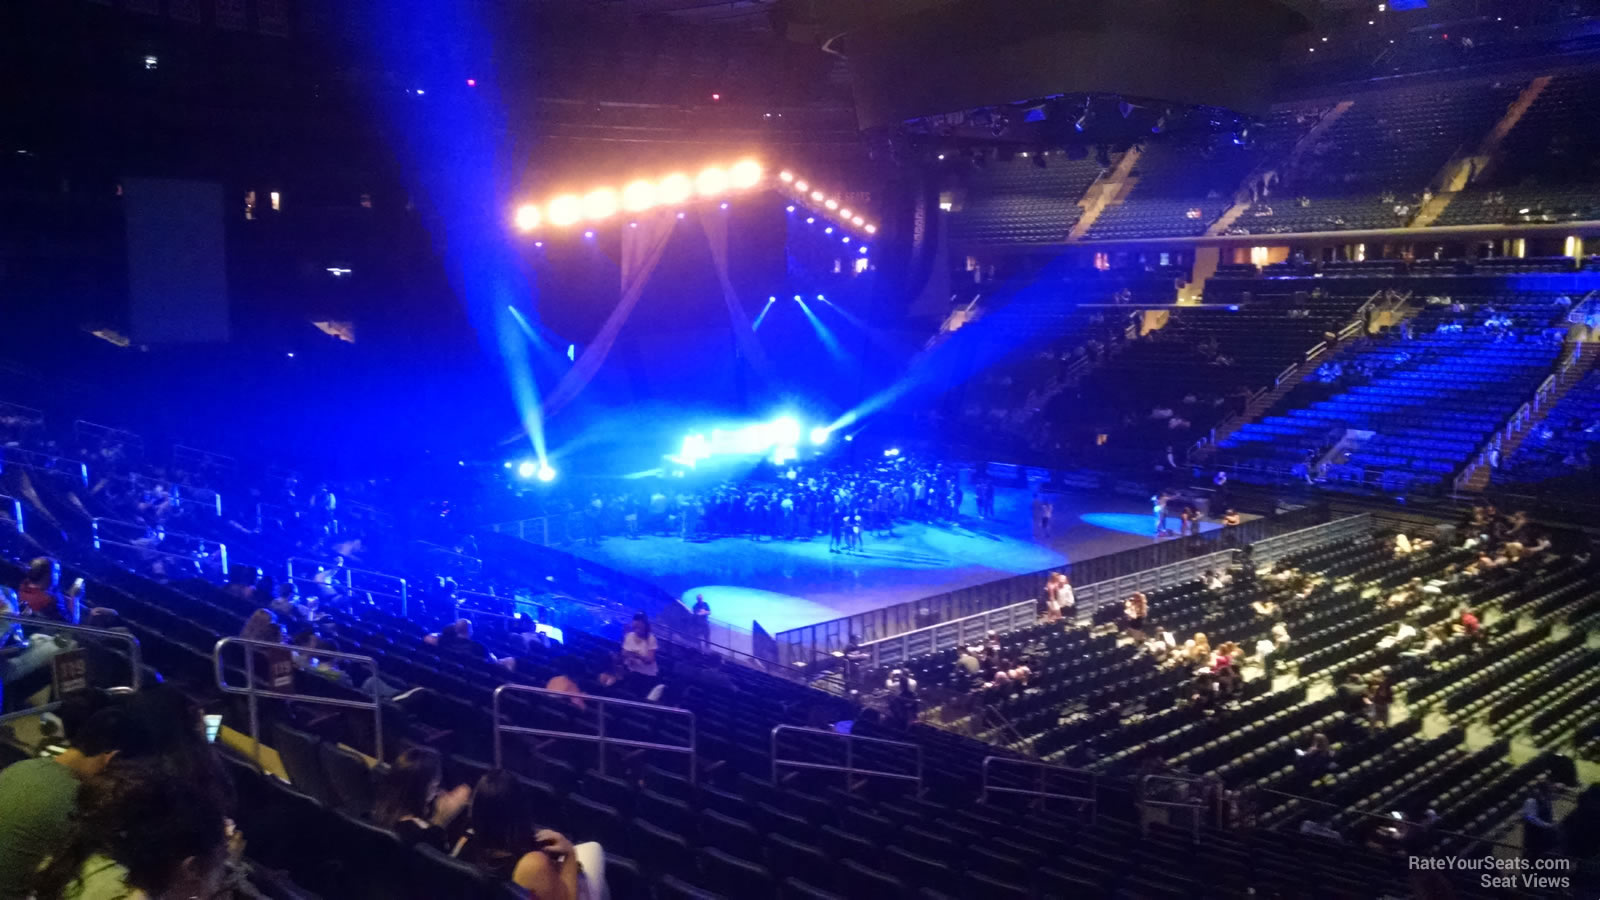 Madison square garden section 119 concert seating - Bruno mars tickets madison square garden ...